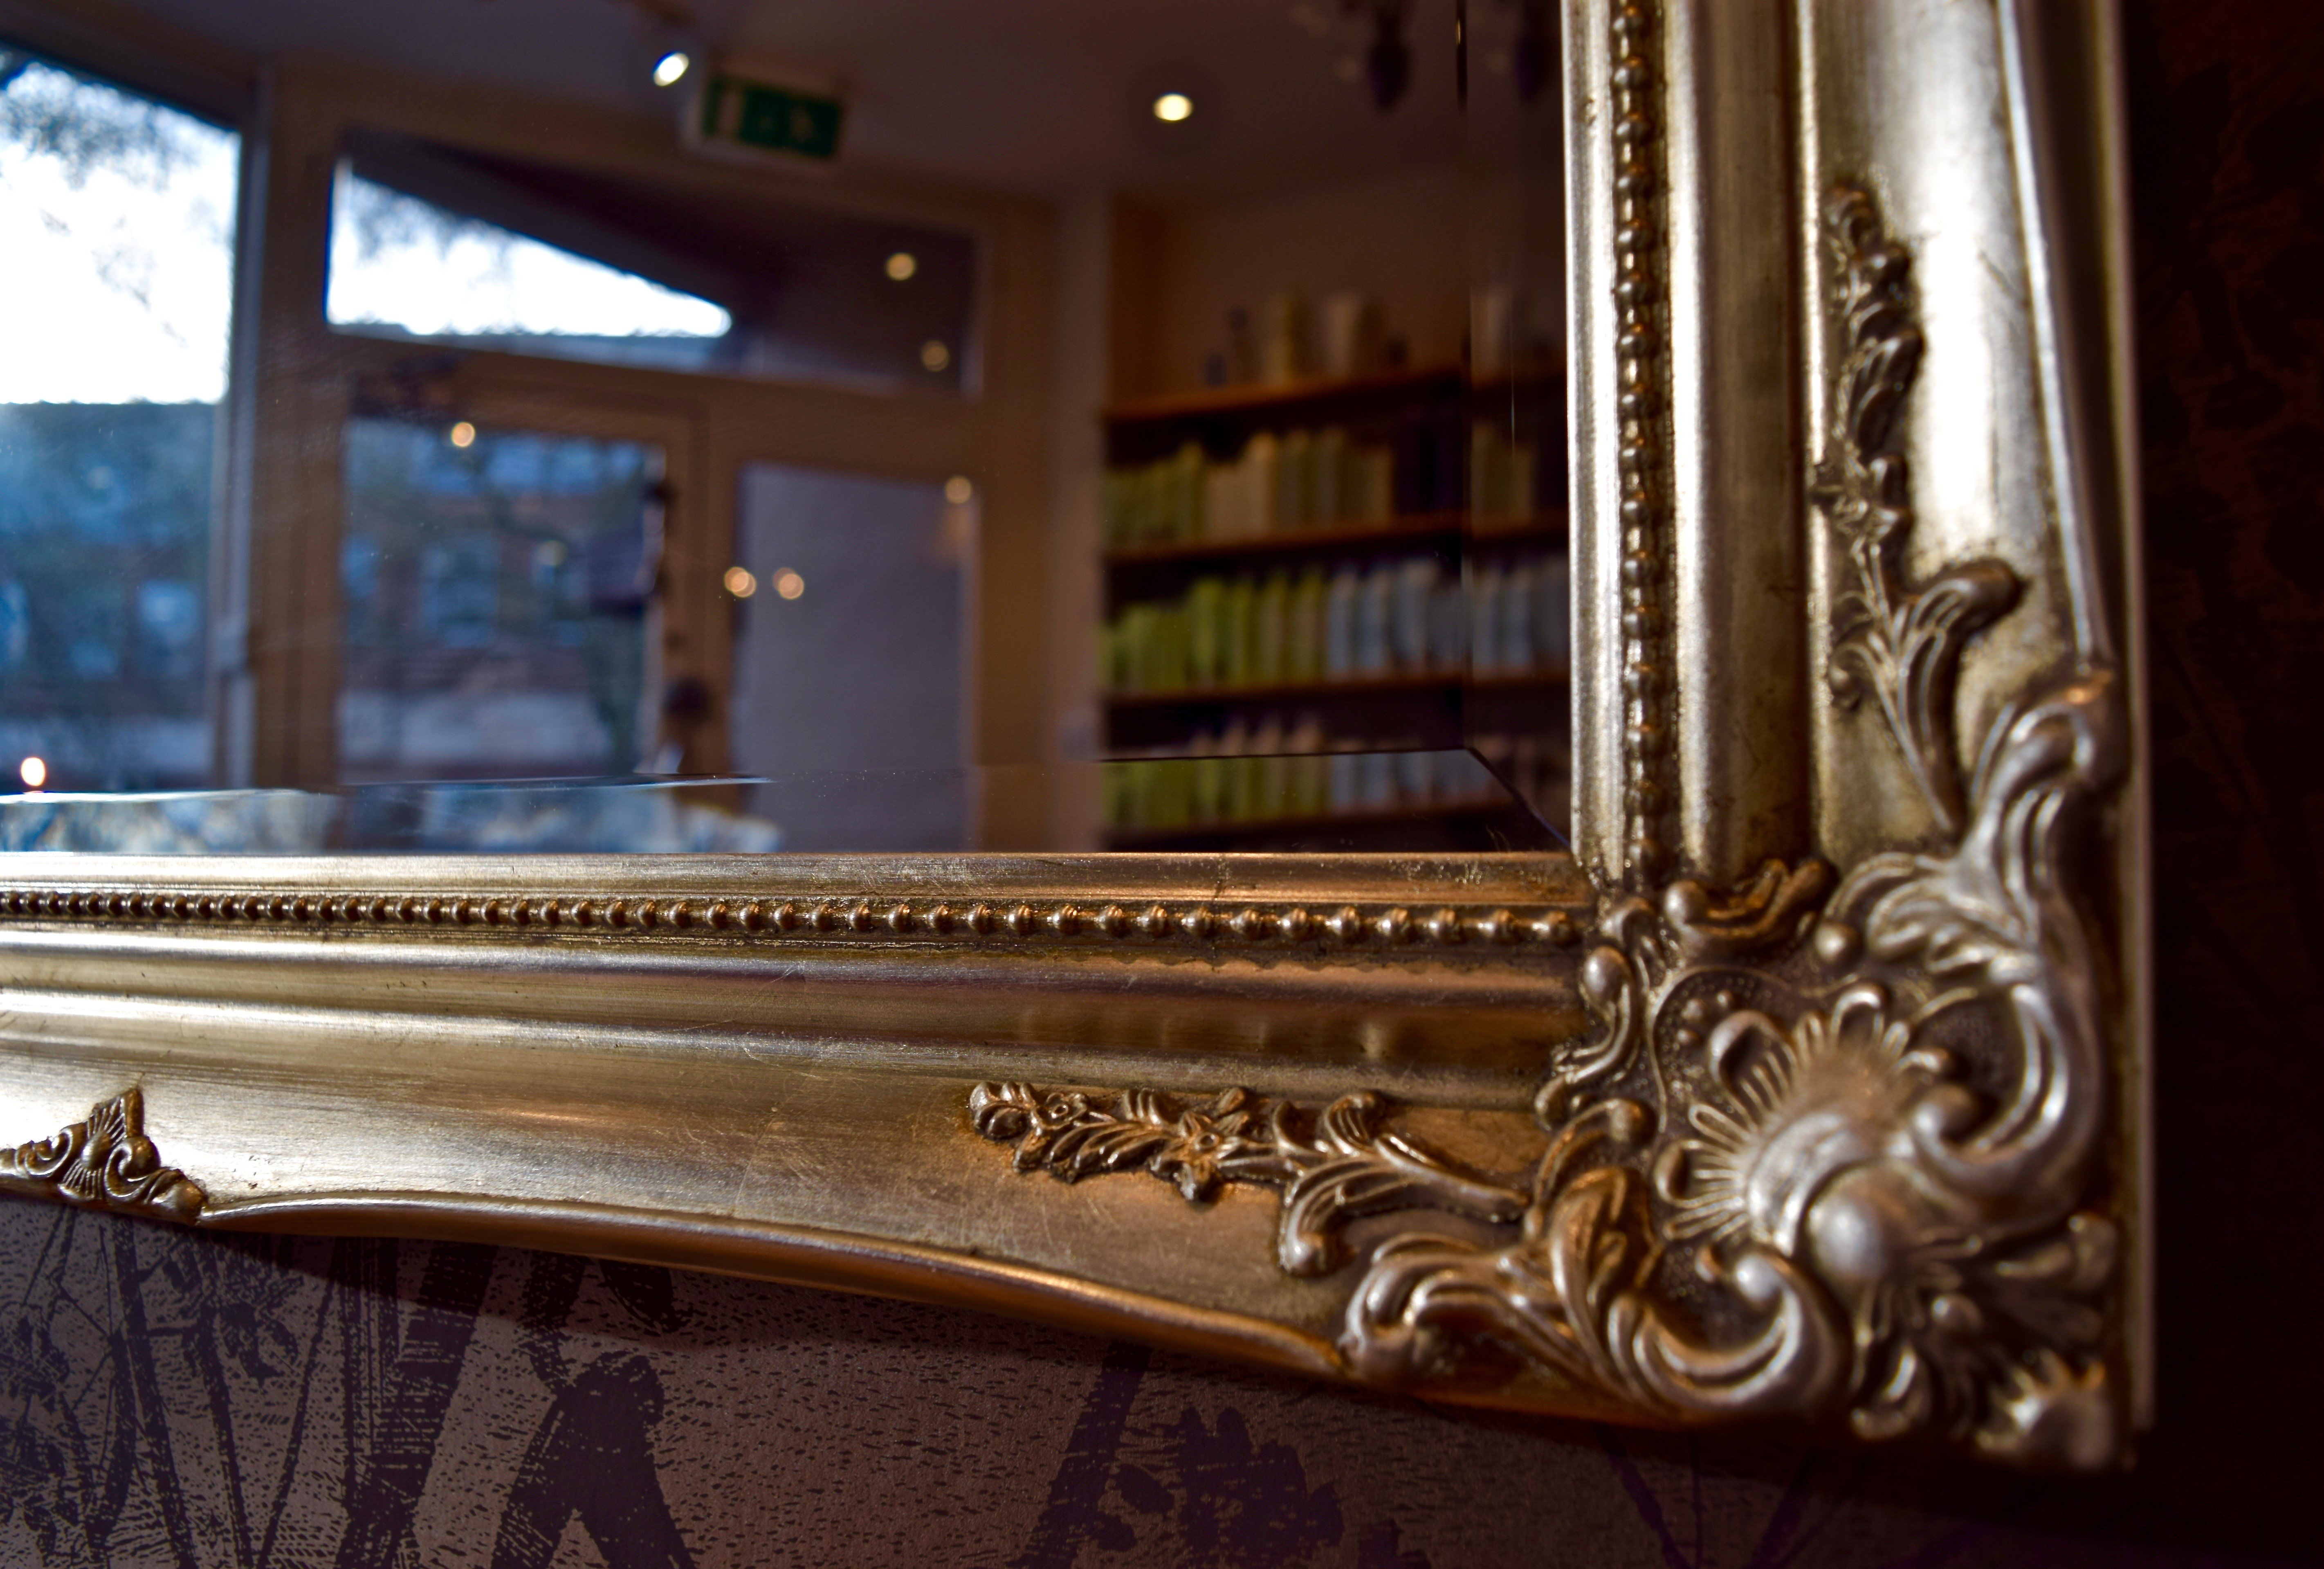 large mirror in ornate carved frame